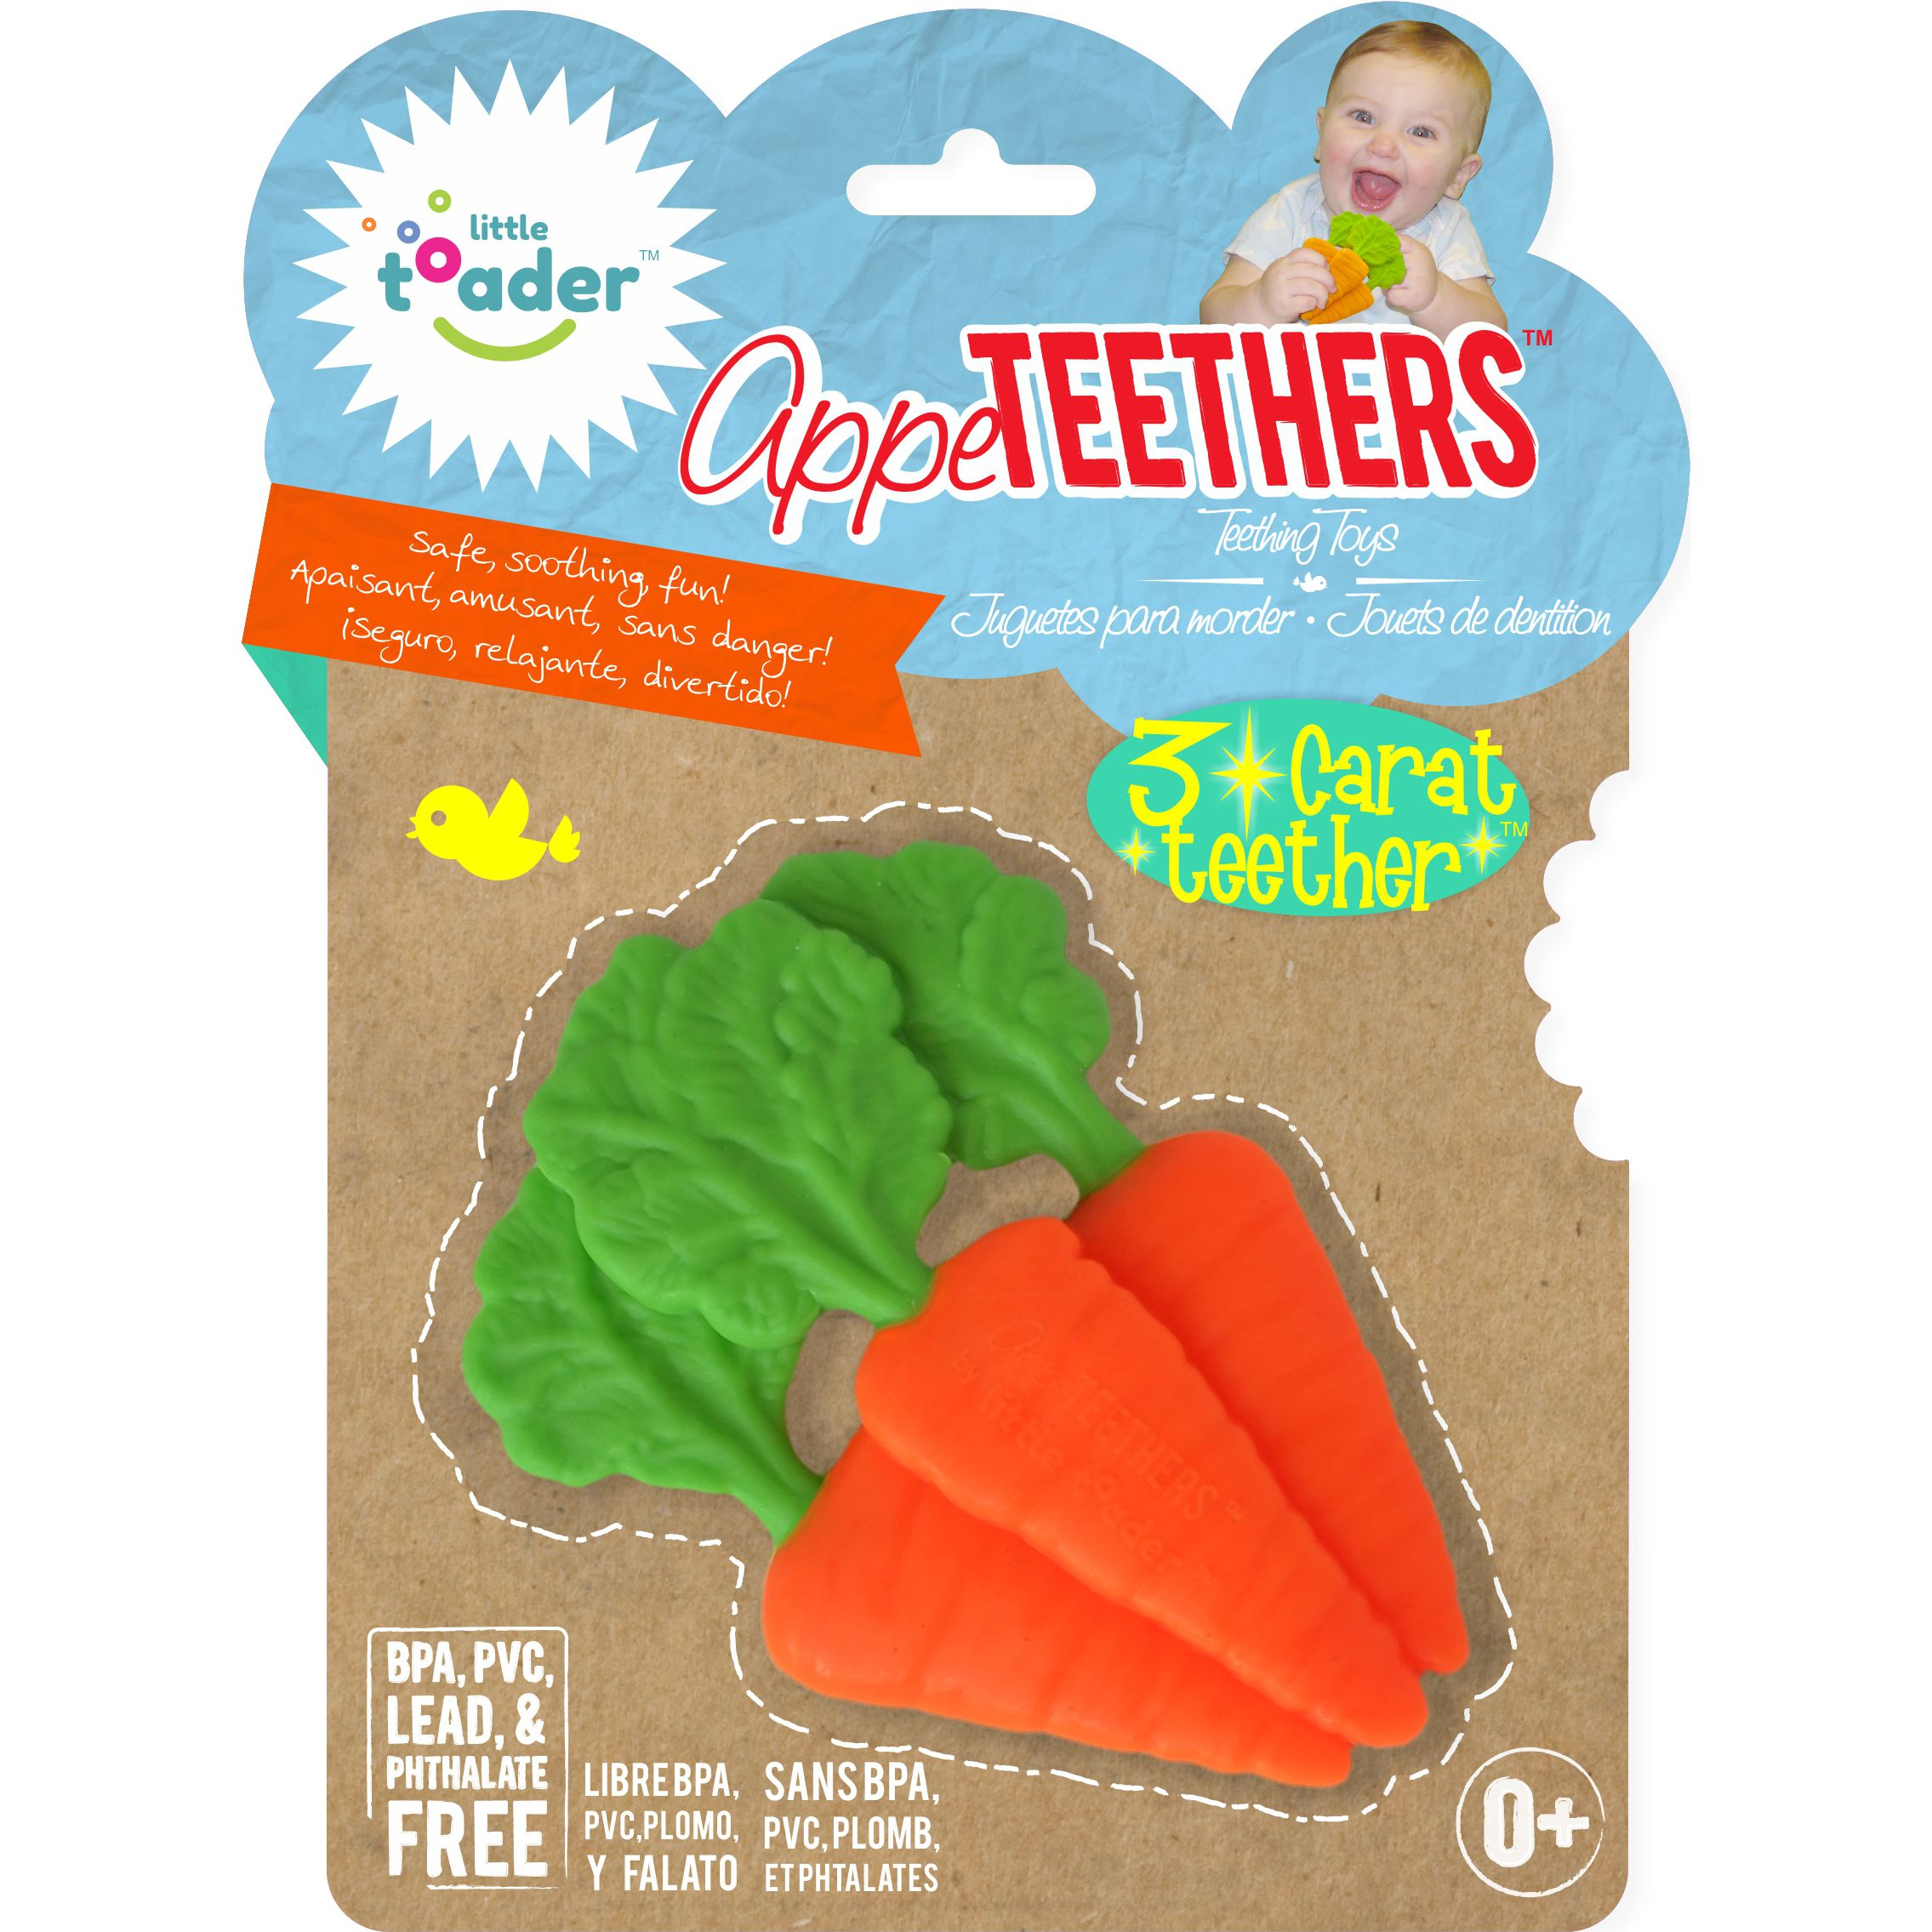 Little Toader Appe TEETHERS Teething Toys, 3 Carat Teether